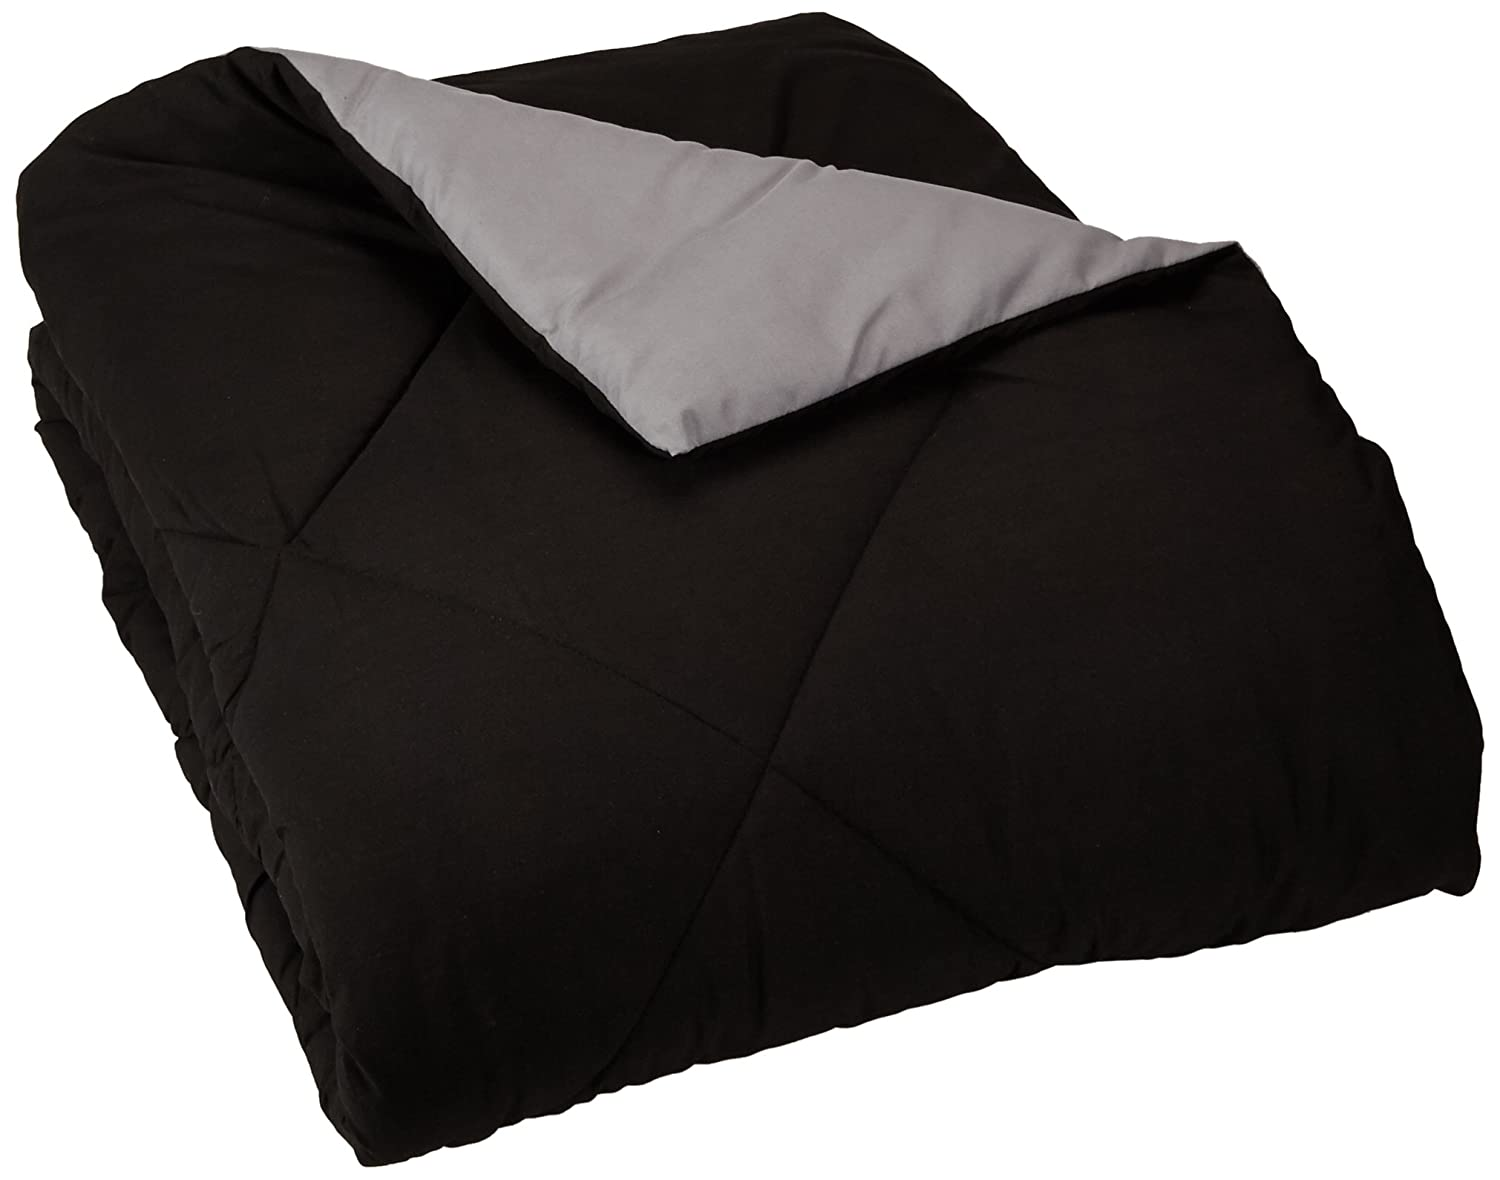 [Apply coupon] AmazonBasics Reversible Microfiber Comforter - Twin/Twin Extra-Long, Black